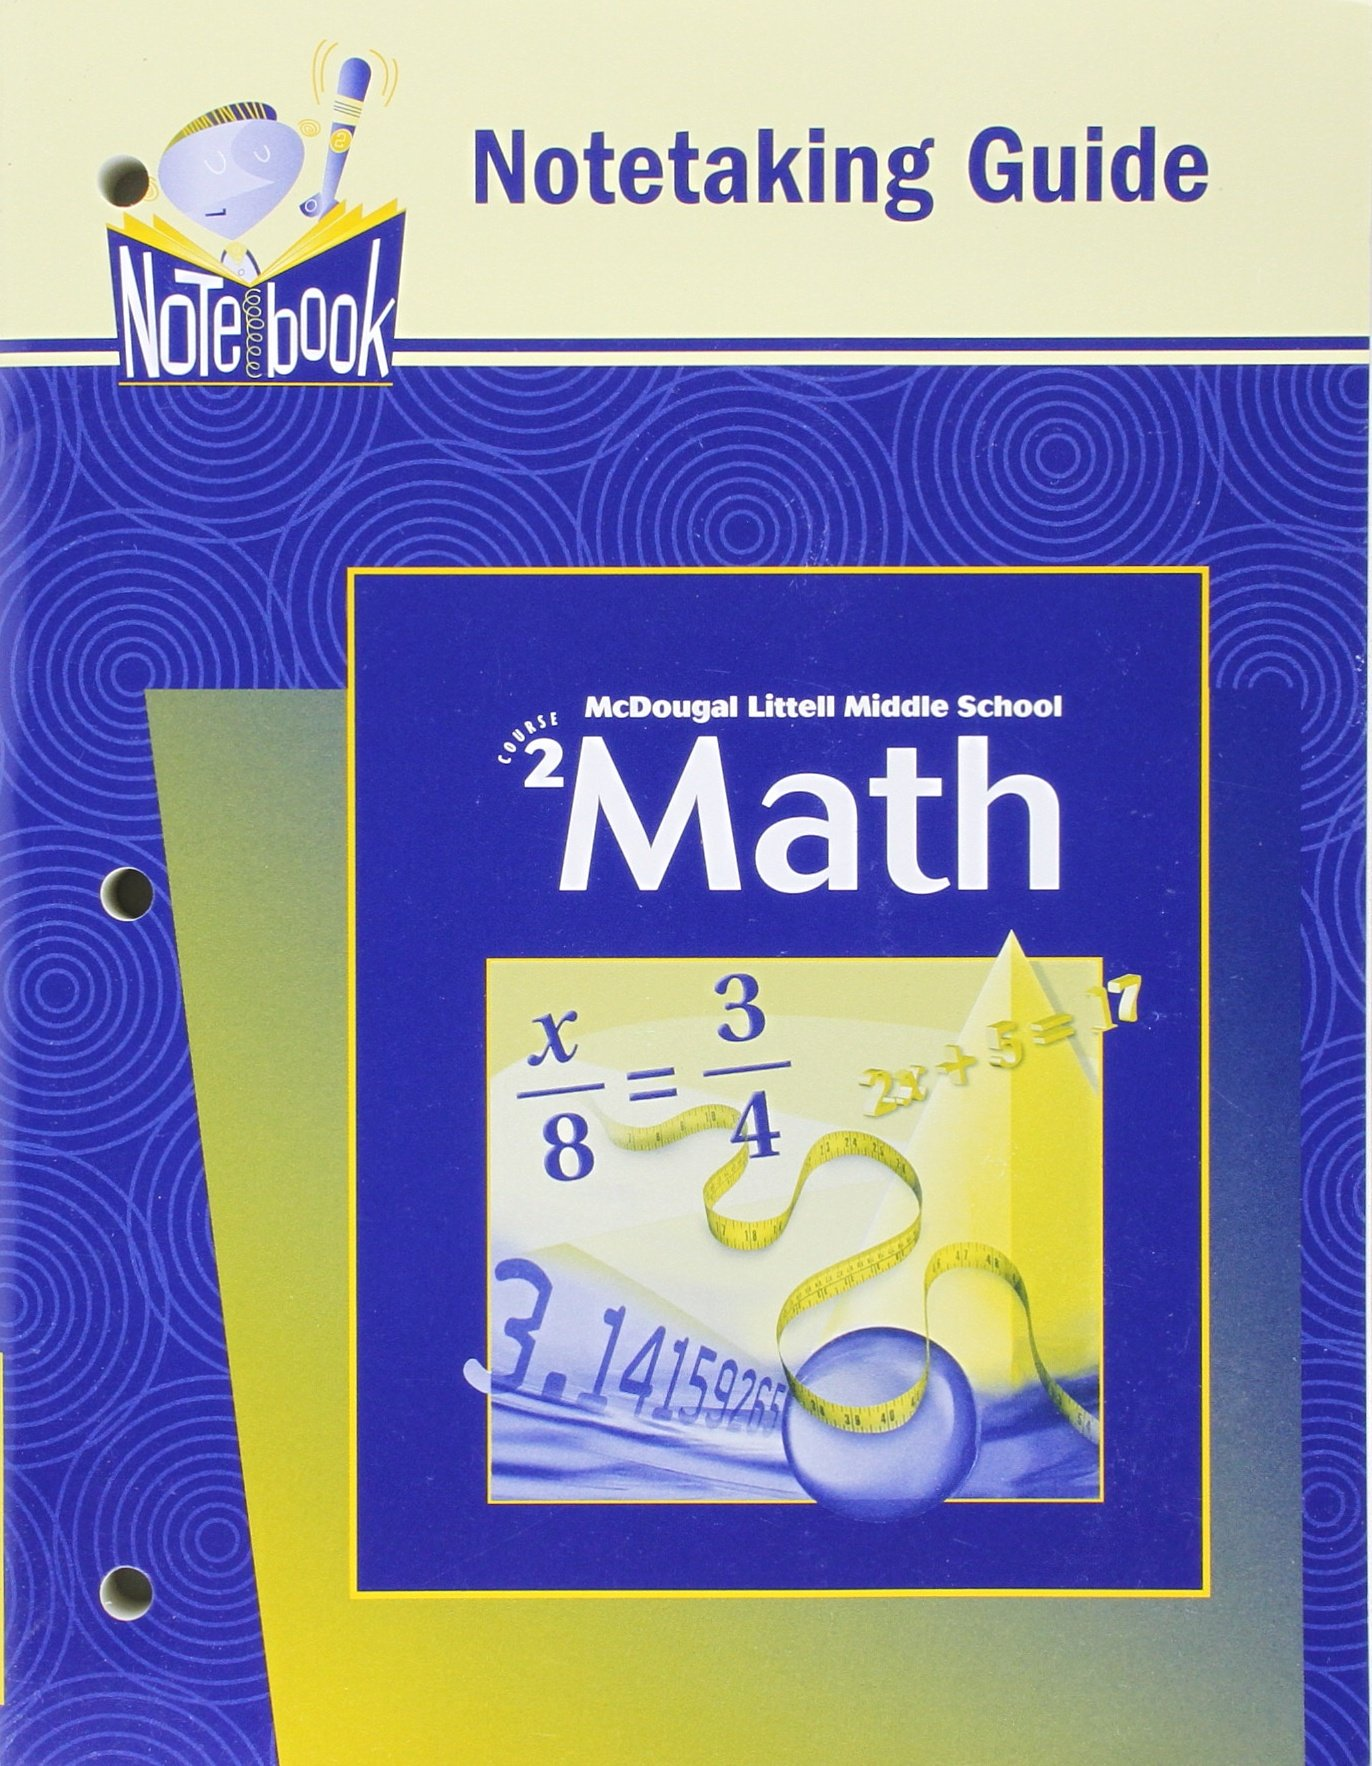 McDougal Littell Middle School Math, Course 2: Notetaking Guide, Student Edition